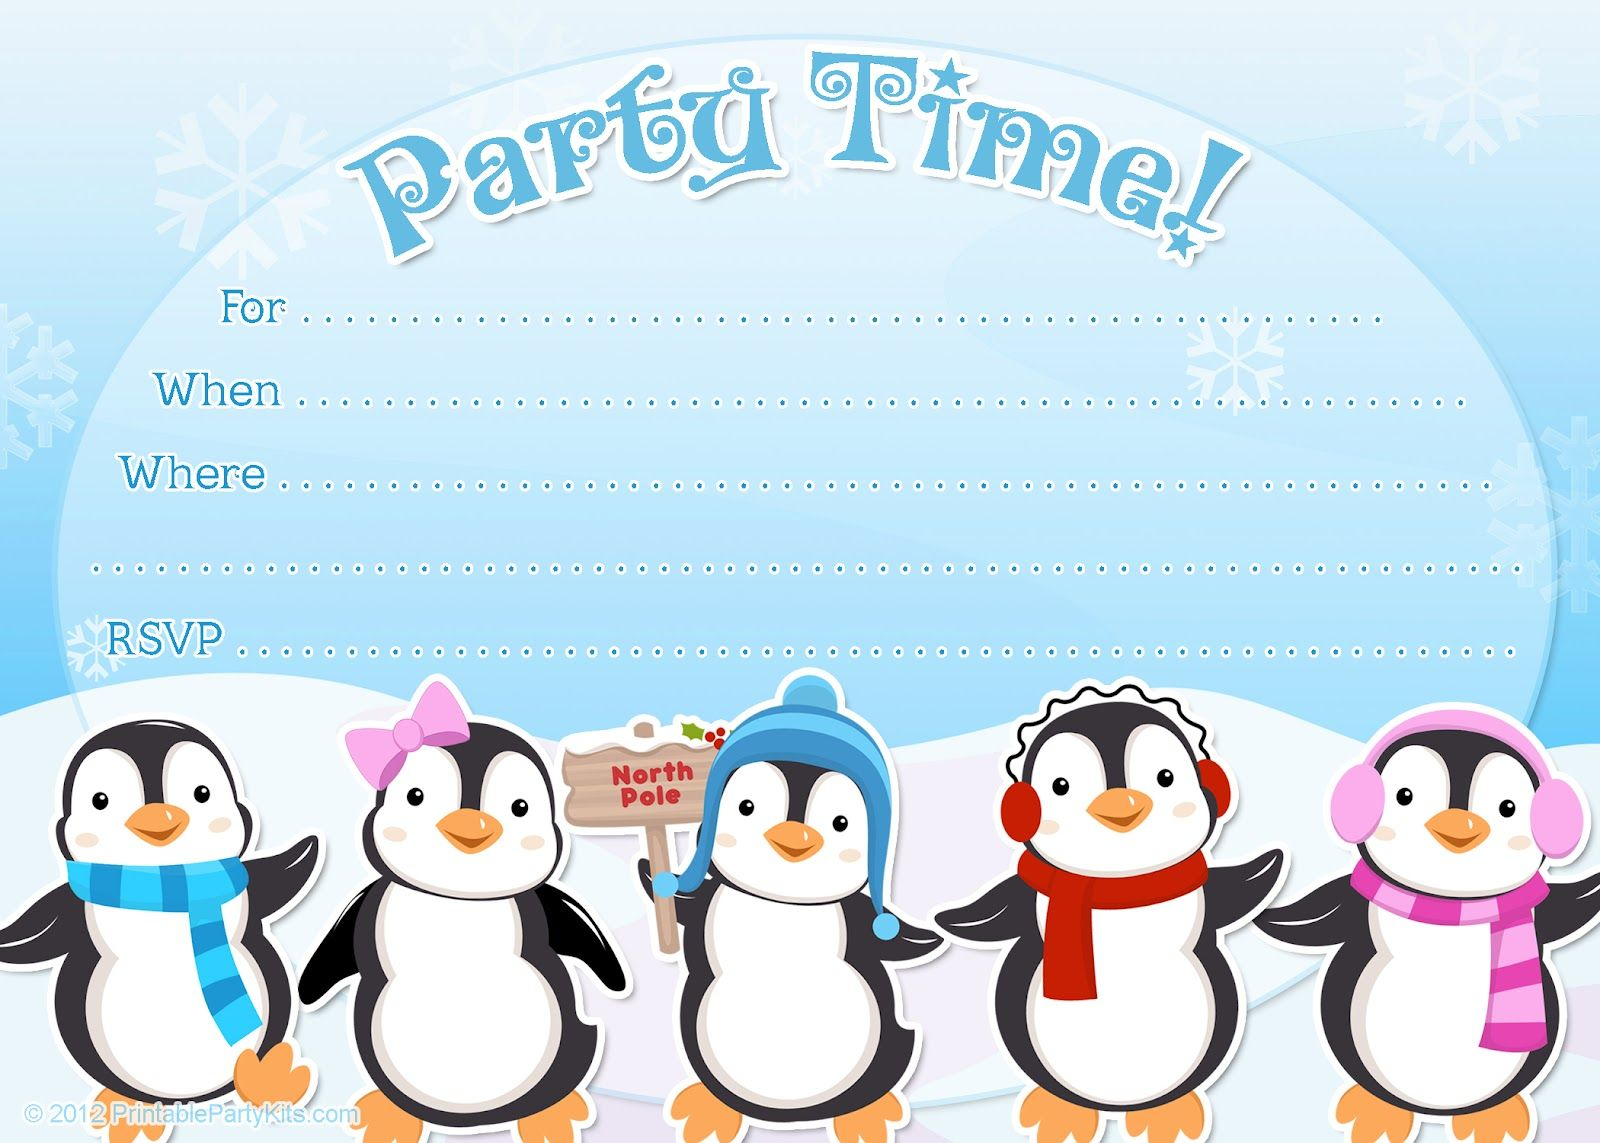 Free Printable Penguin Winter Or Holiday Invitation Template From - Party invitation template: white elephant christmas party invitations templates